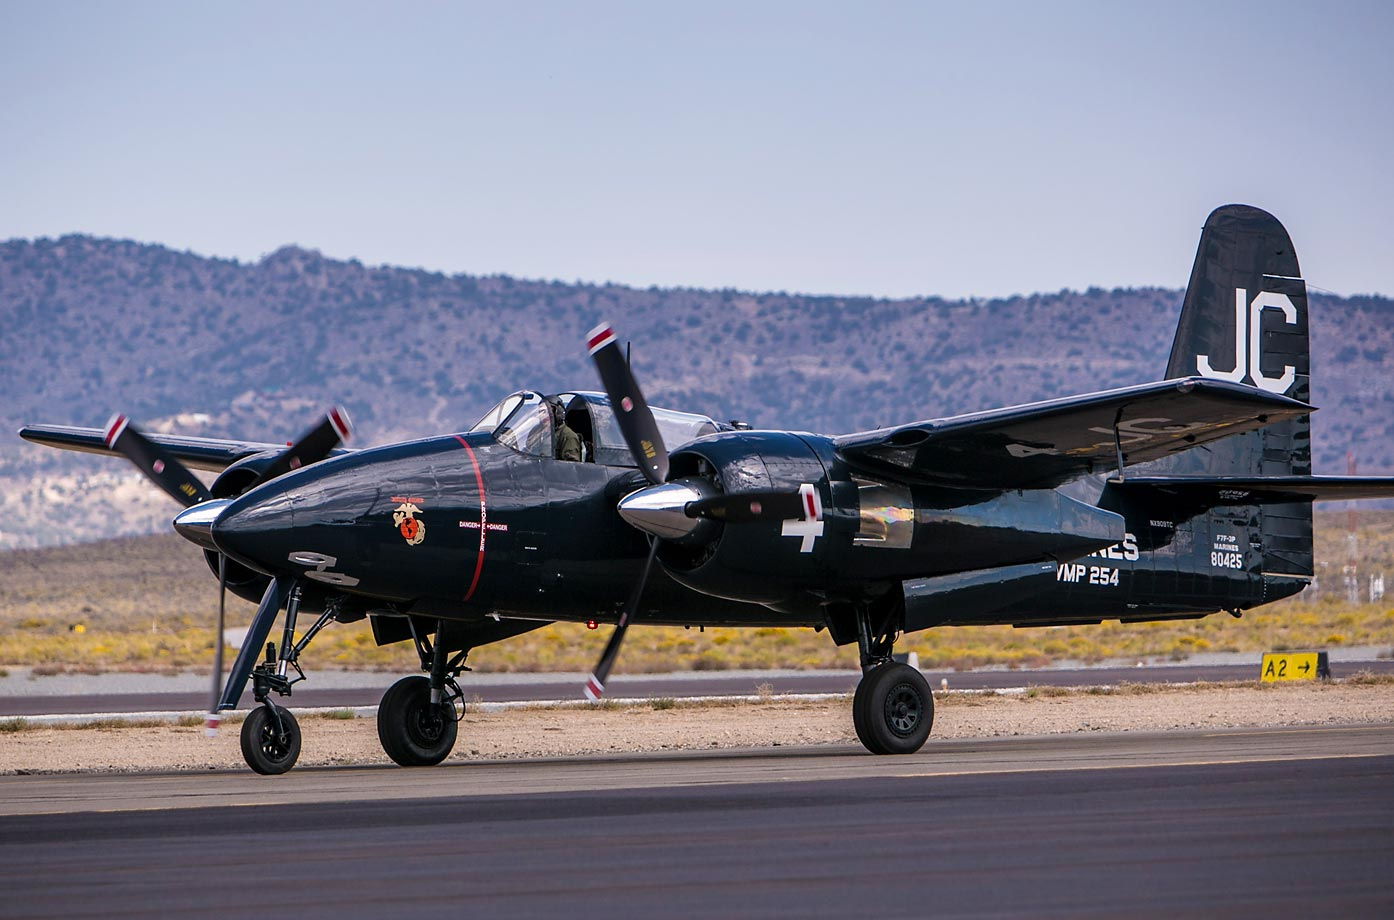 A P-38 Lightning bomber plane taxis onto the Reno National Championship Air Races runway in 2013.